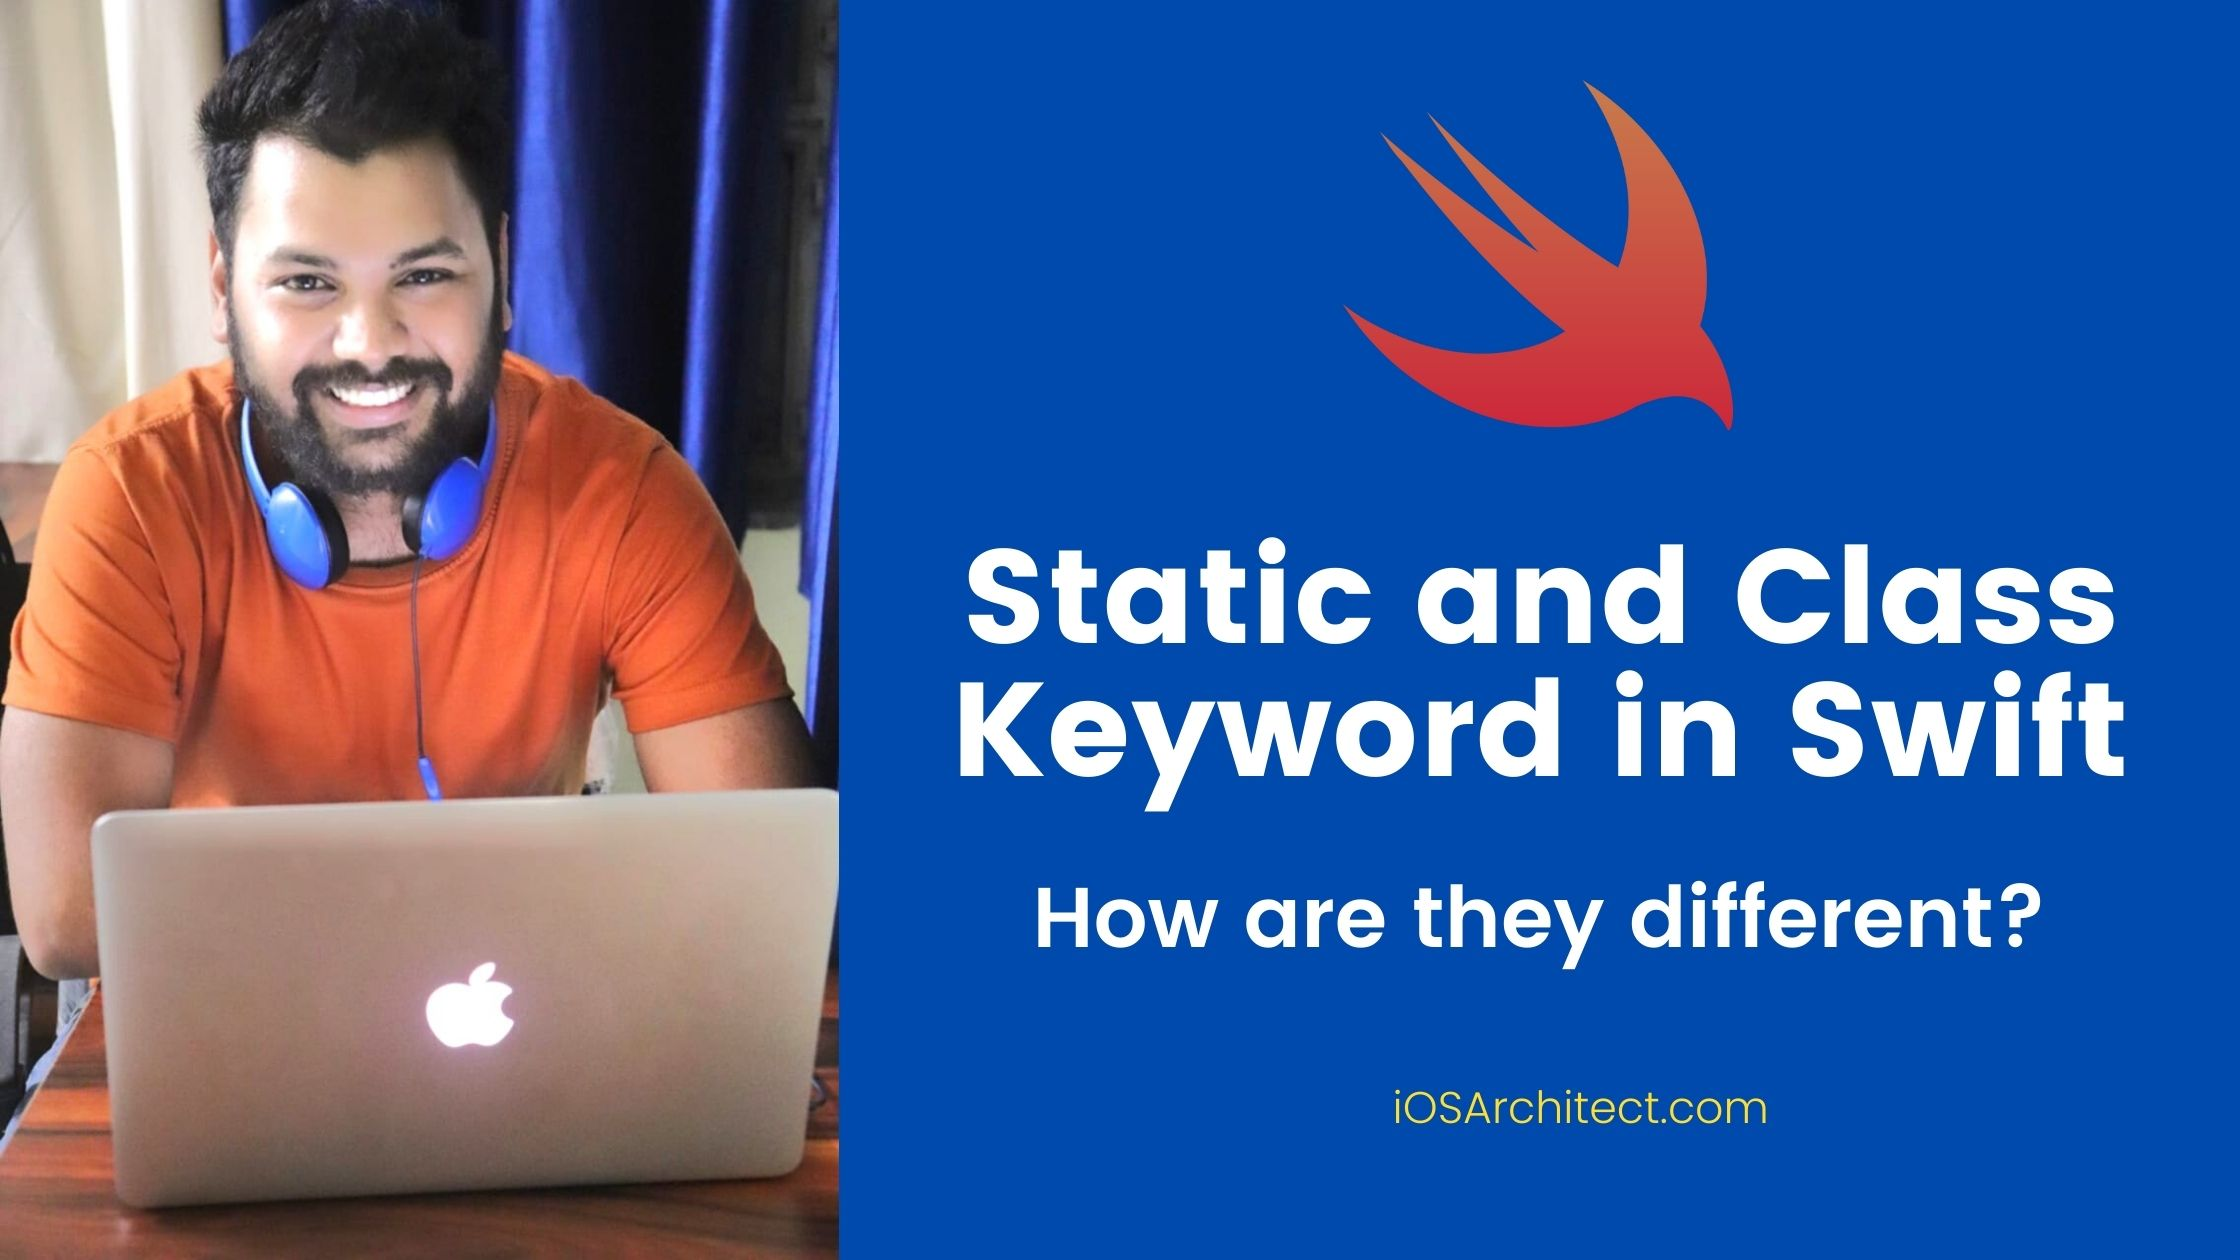 static and class keyword in swift